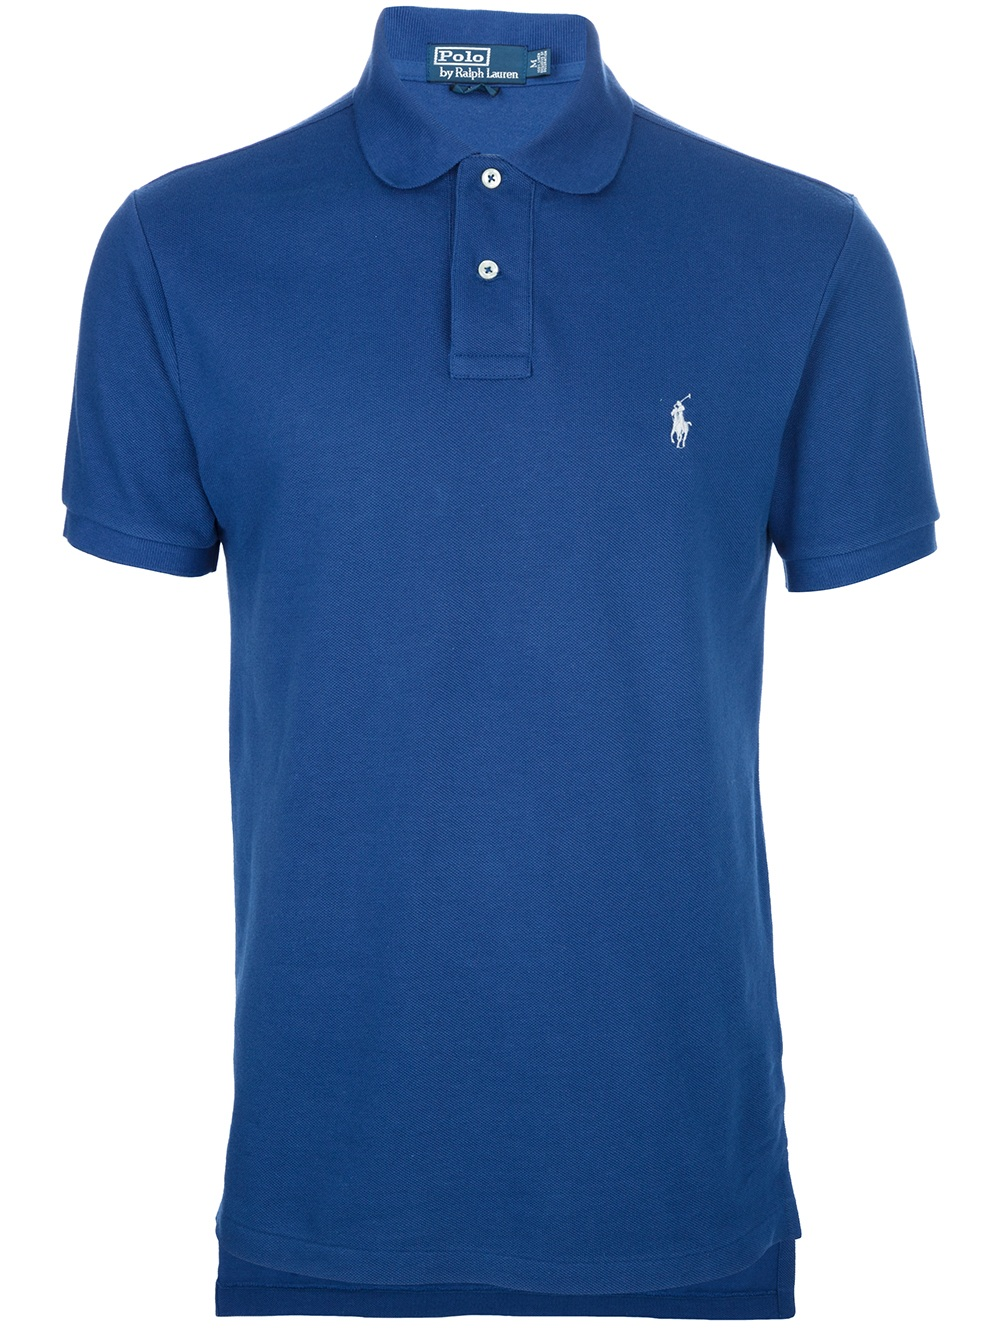 Polo ralph lauren logo polo shirt in blue for men lyst for Polo shirts with logos